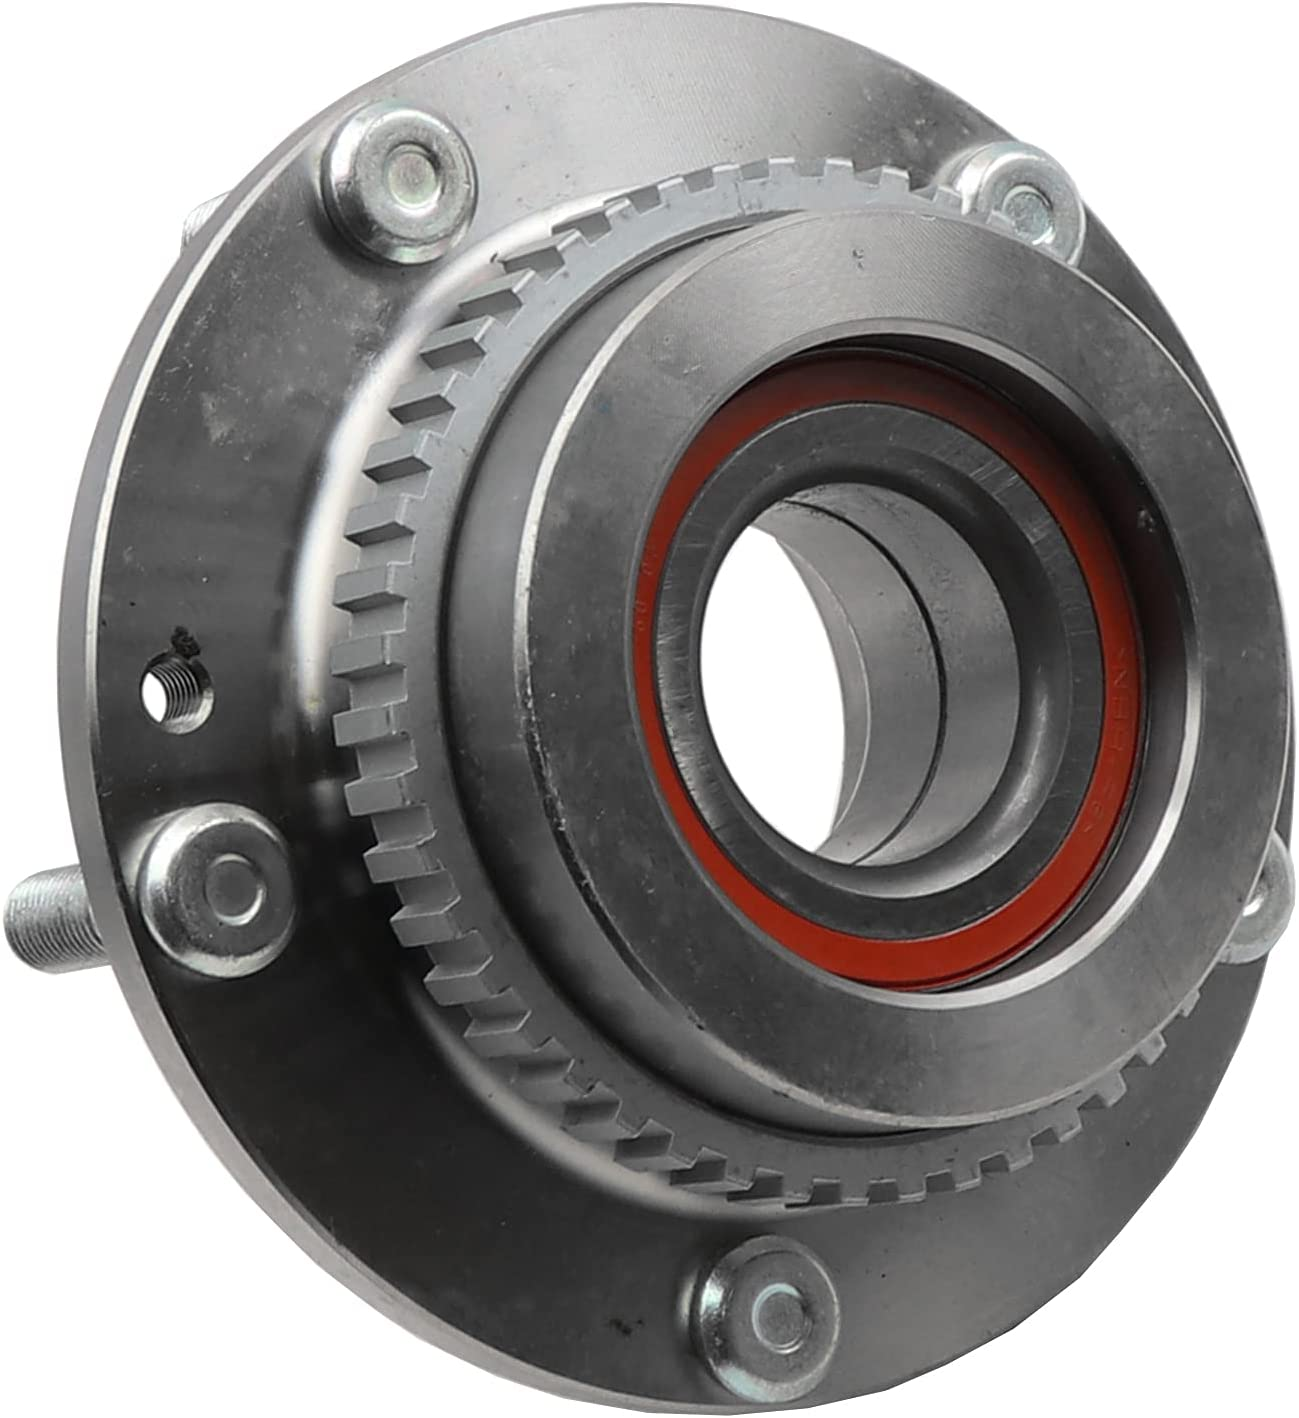 Beck Arnley New product type Deluxe 051-6396 Hub Assembly and Bearing